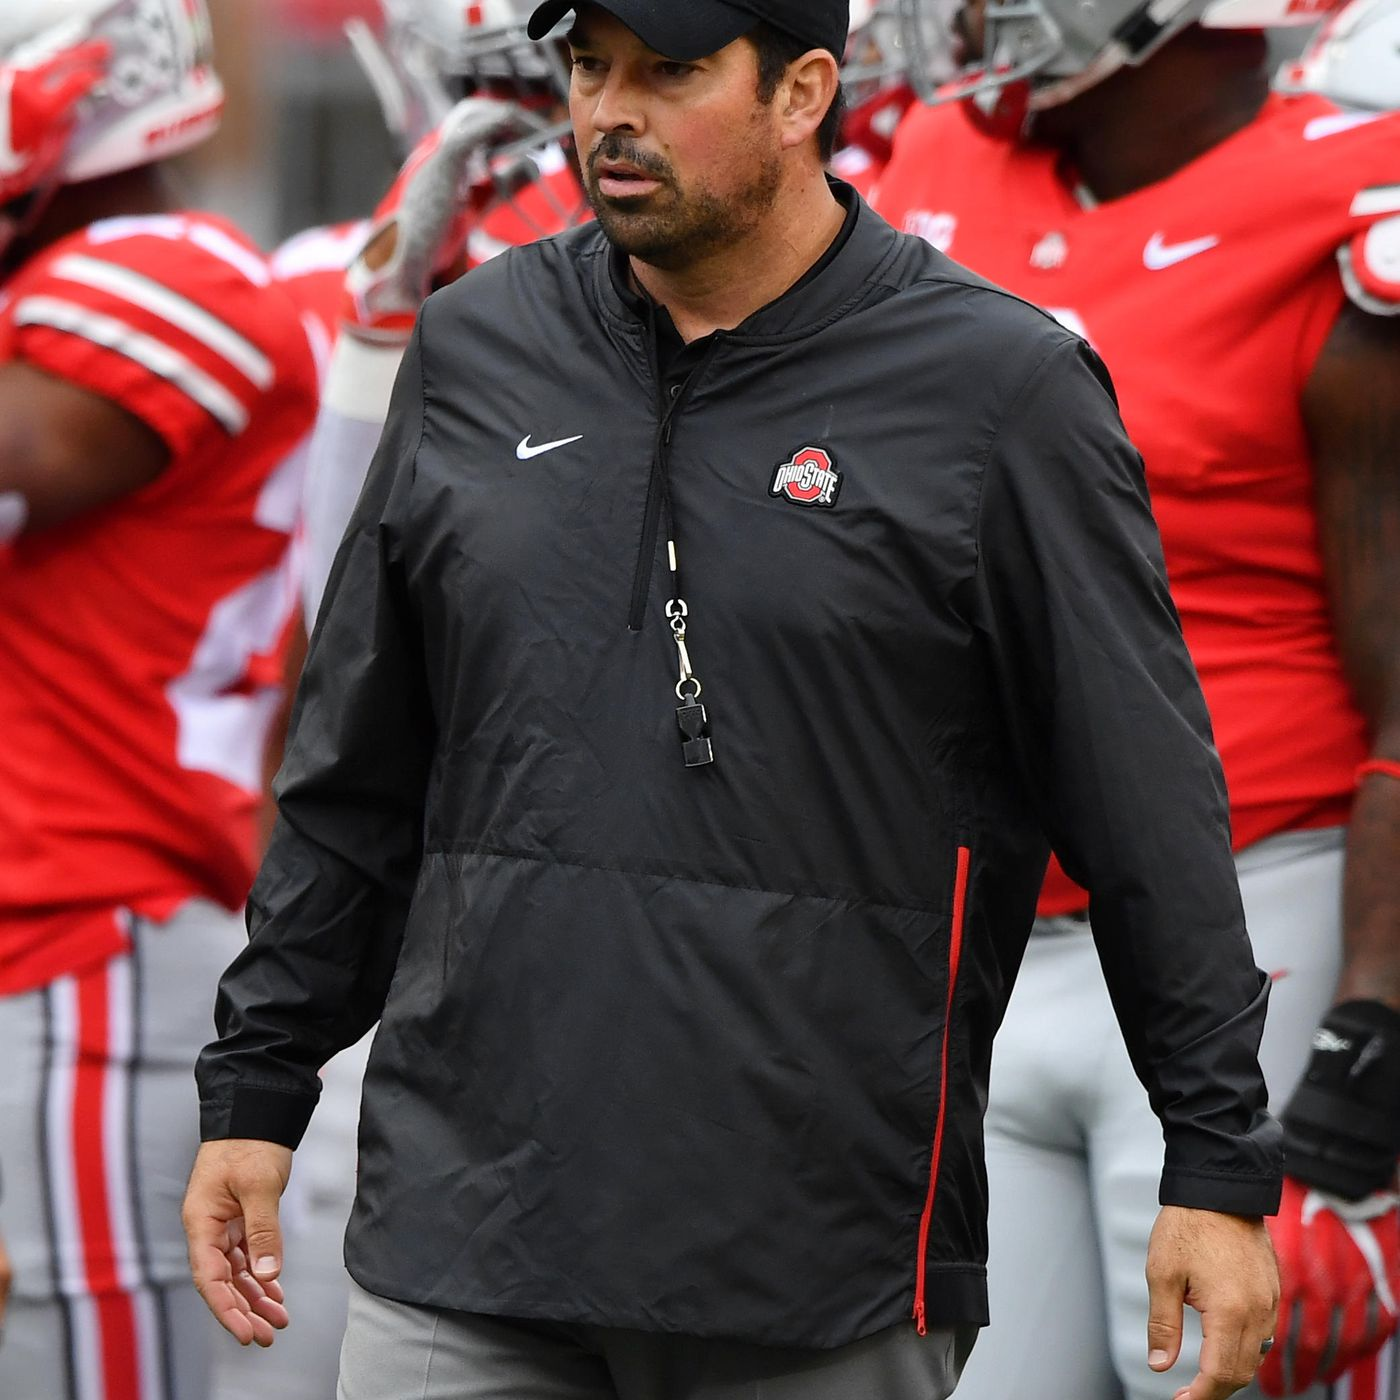 Ohio State offers standout 2022 running back - Land-Grant